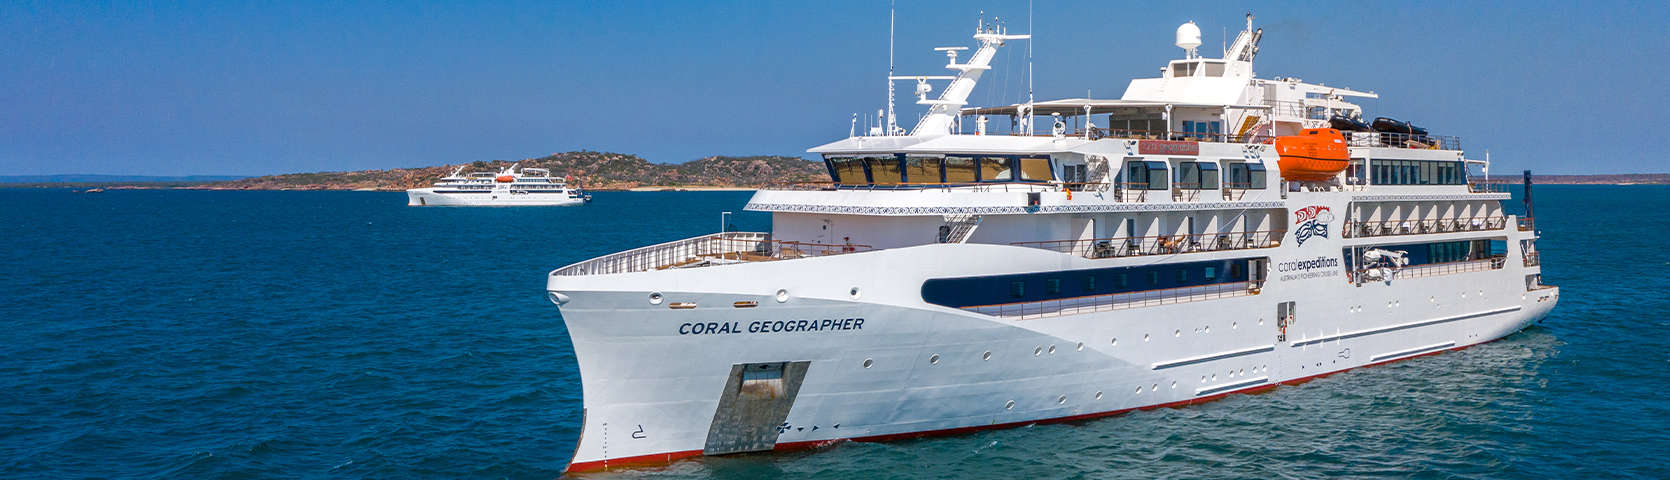 Coral-Geographer-and-Coral-Adventurer-Cruise-Ships-In-The-Kimberley-May-2021